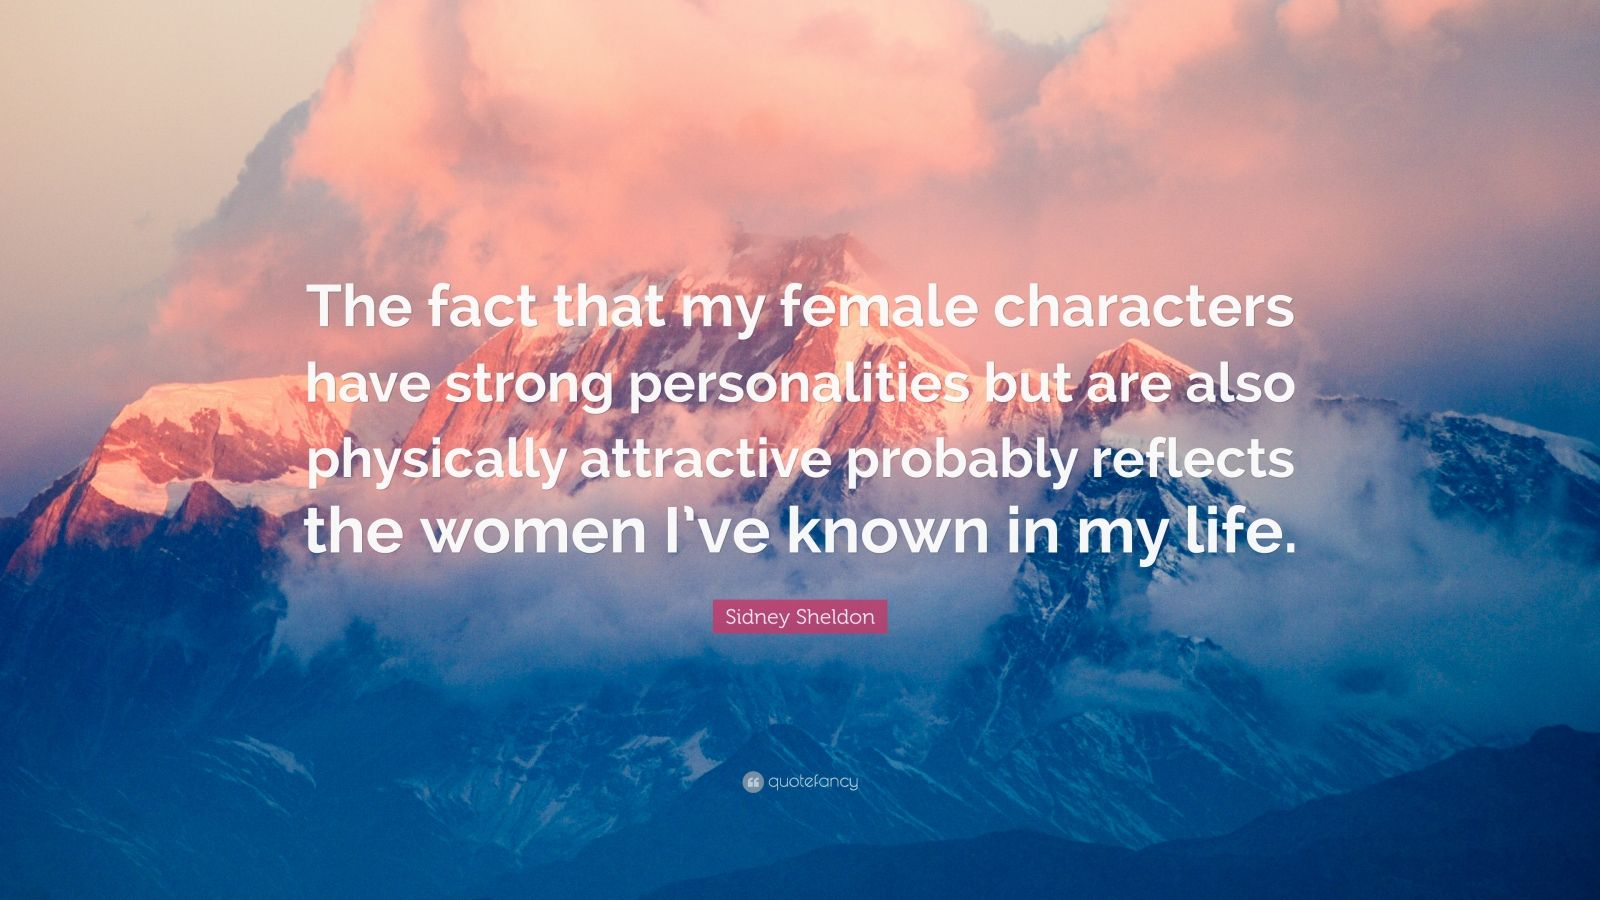 """Sidney Sheldon Quote: """"The fact that my female characters have strong personalities but are also physically attractive probably reflects the women I've known in my life."""""""